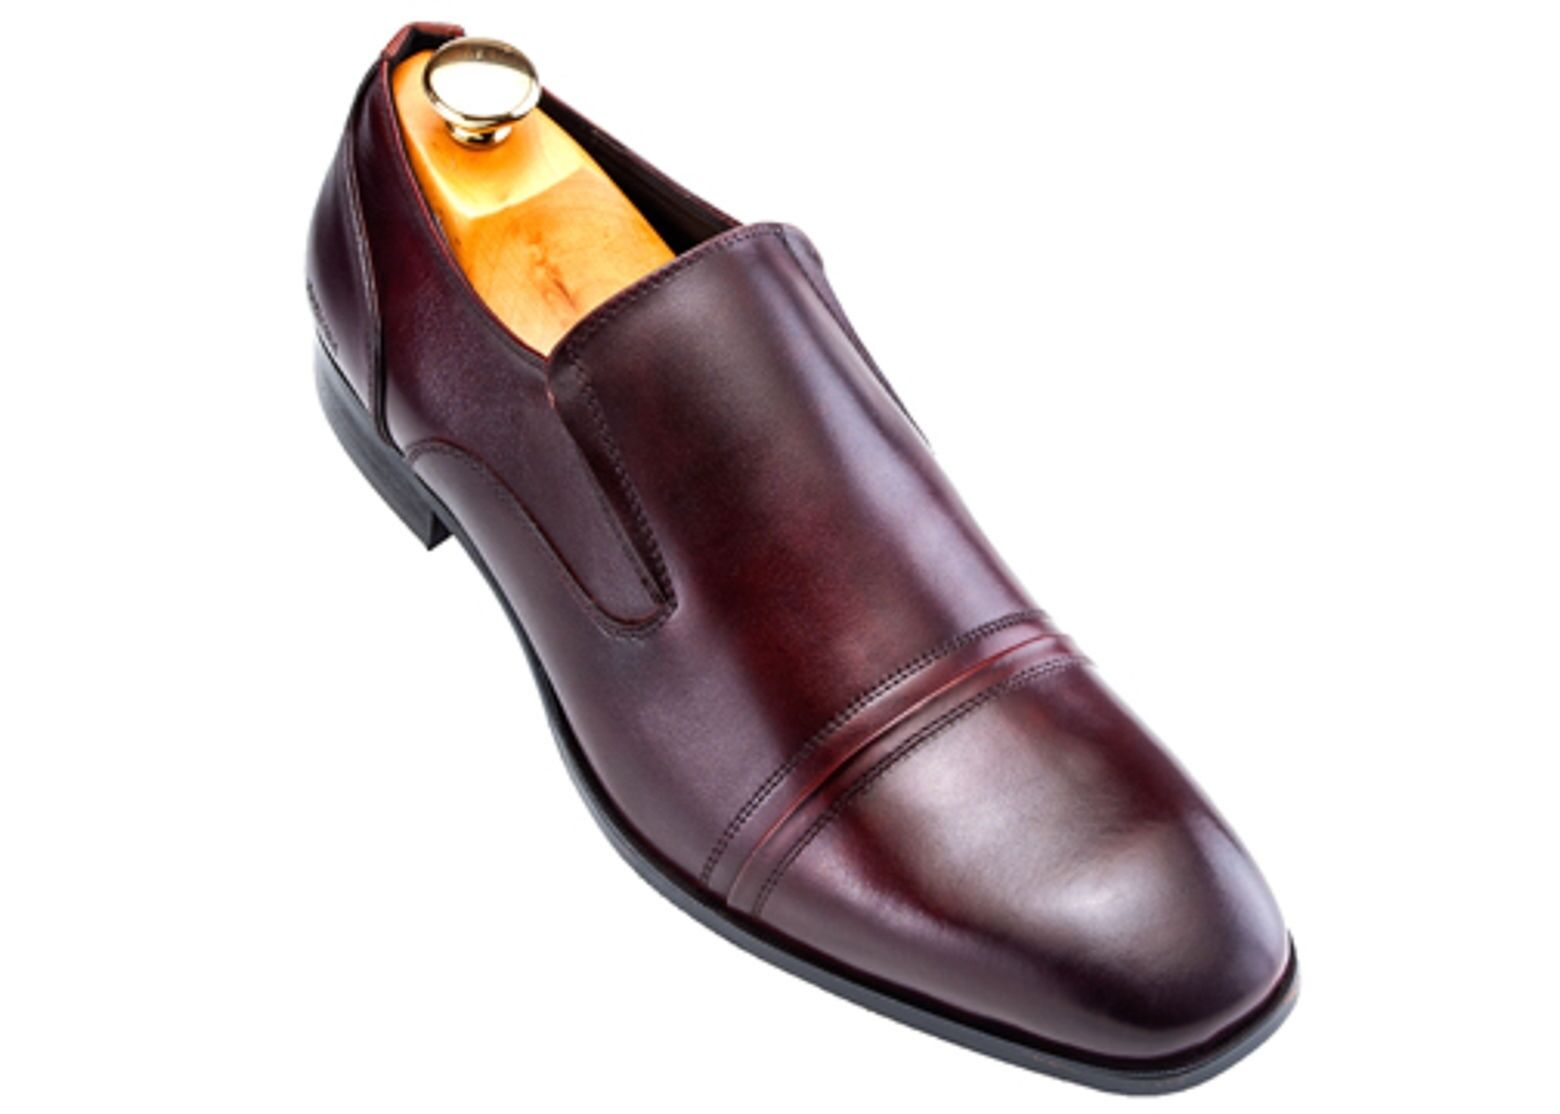 nuovo stile Kenneth Cole Cole Cole Burgundy Leather Shaded Dress Slip-On Cap Toe Trending Loafer Shoe  n ° 1 online